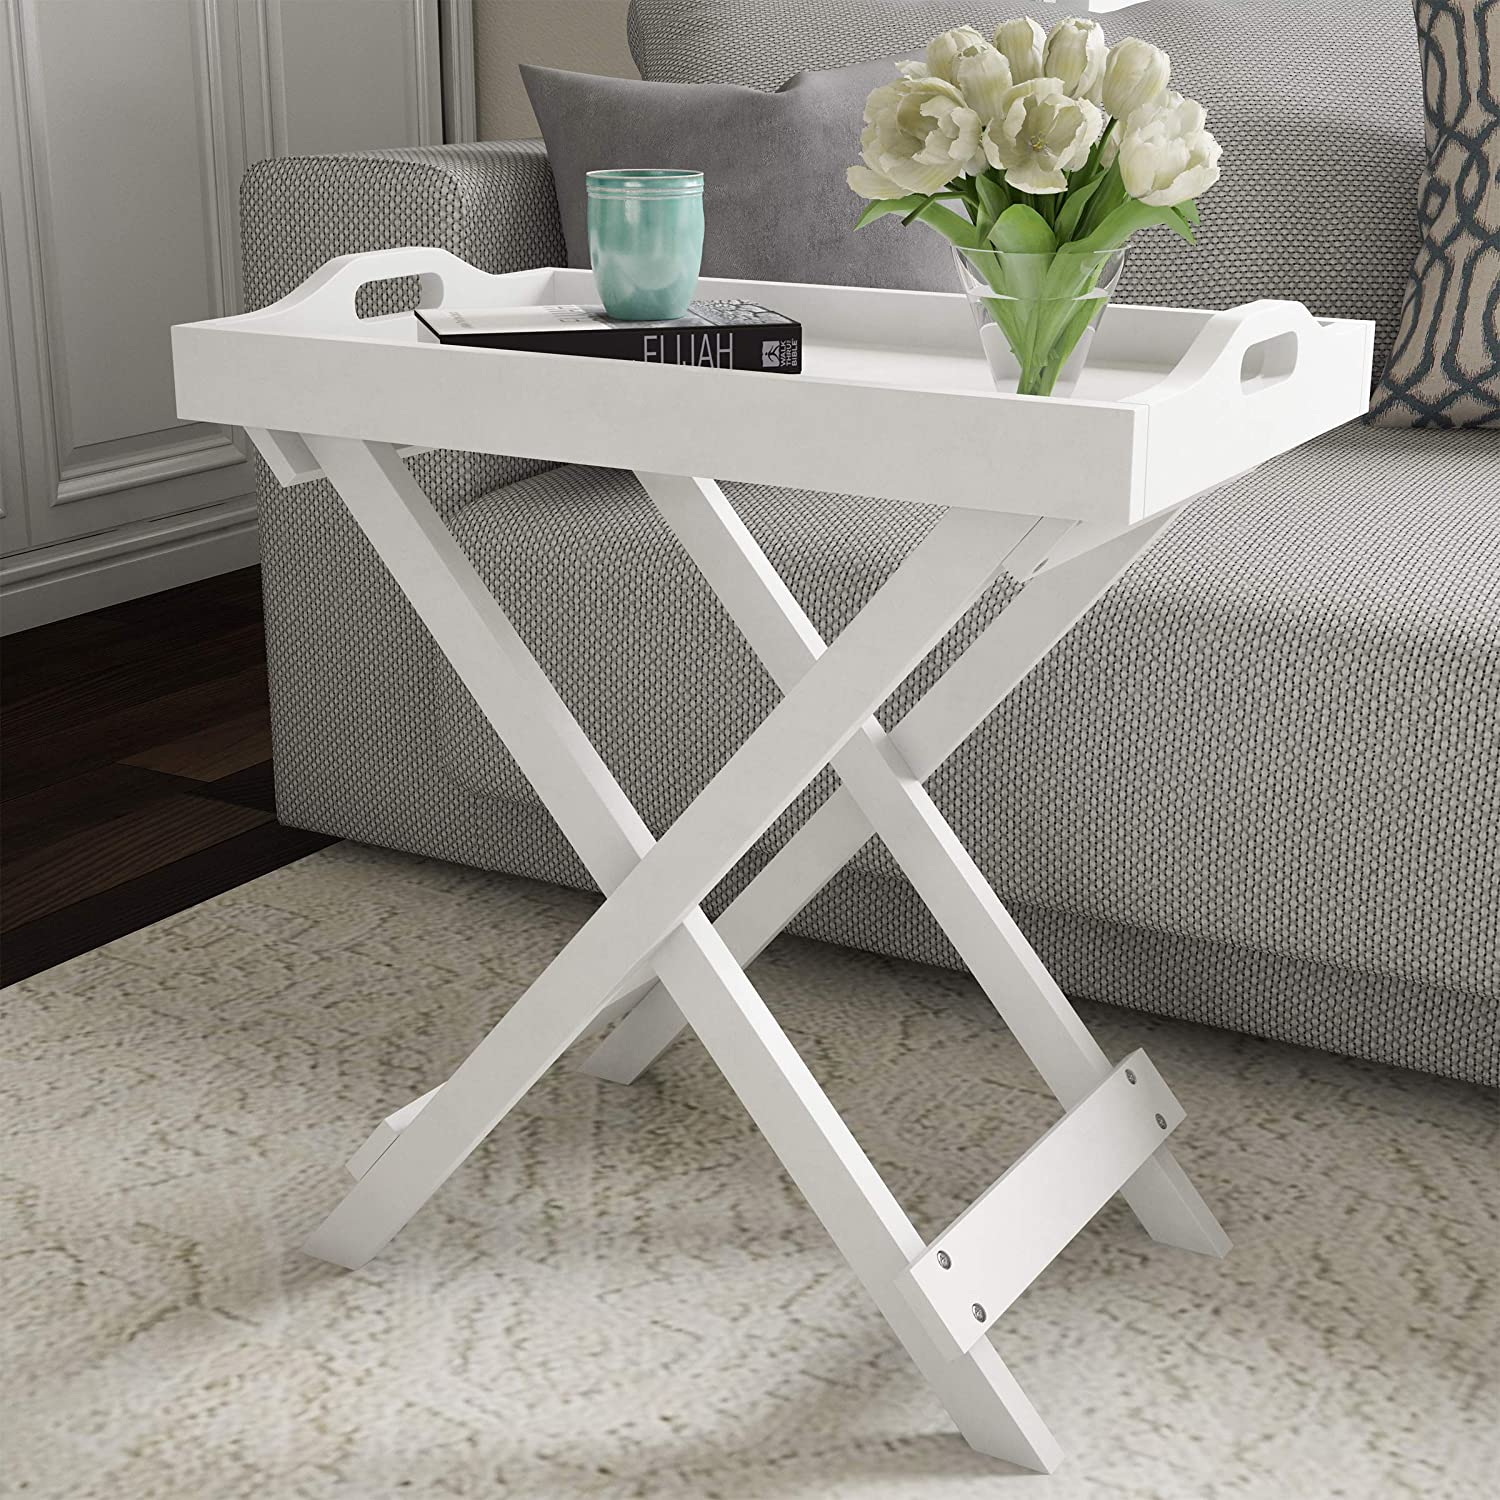 Lavish Home 80-FT-11 Display and Home Accent Table with Removable Tray Top (White)